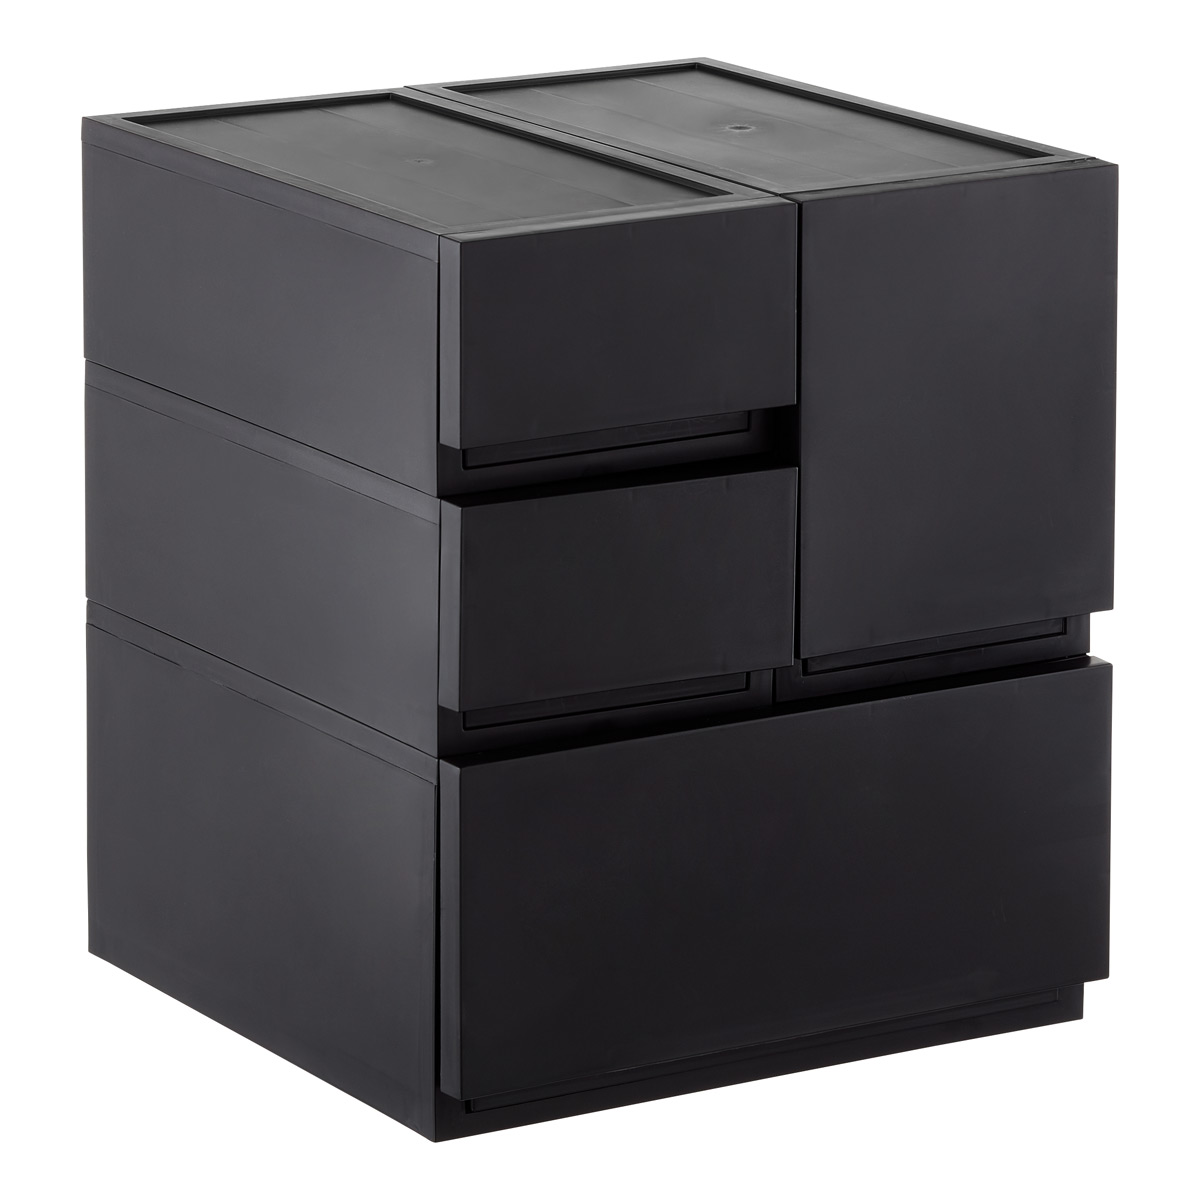 Black Opaque Modular Stackable Drawers ...